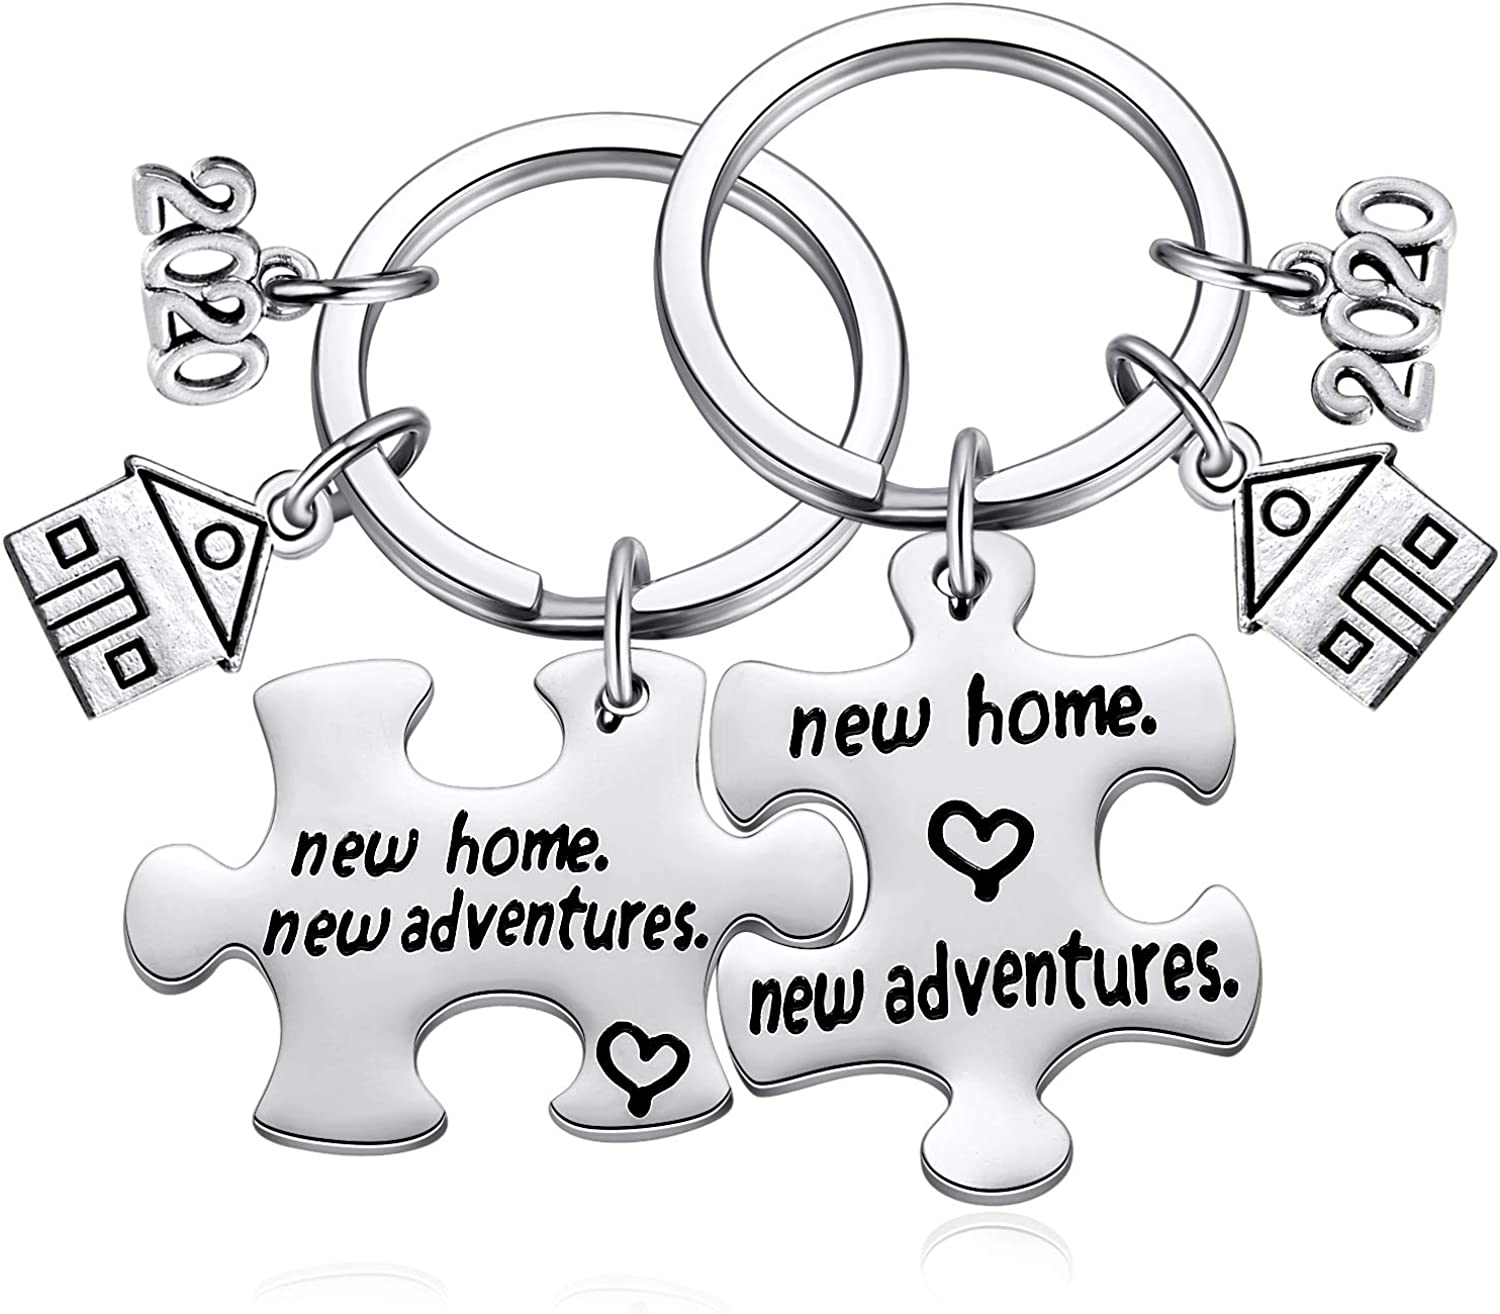 Ralukiia 2020 New Home House Warming Key Chain Going Away Gifts Basket for Friends Moving Welcome Neighbor, Housewarming Presents for New Apartment First Time Homeowners Couple